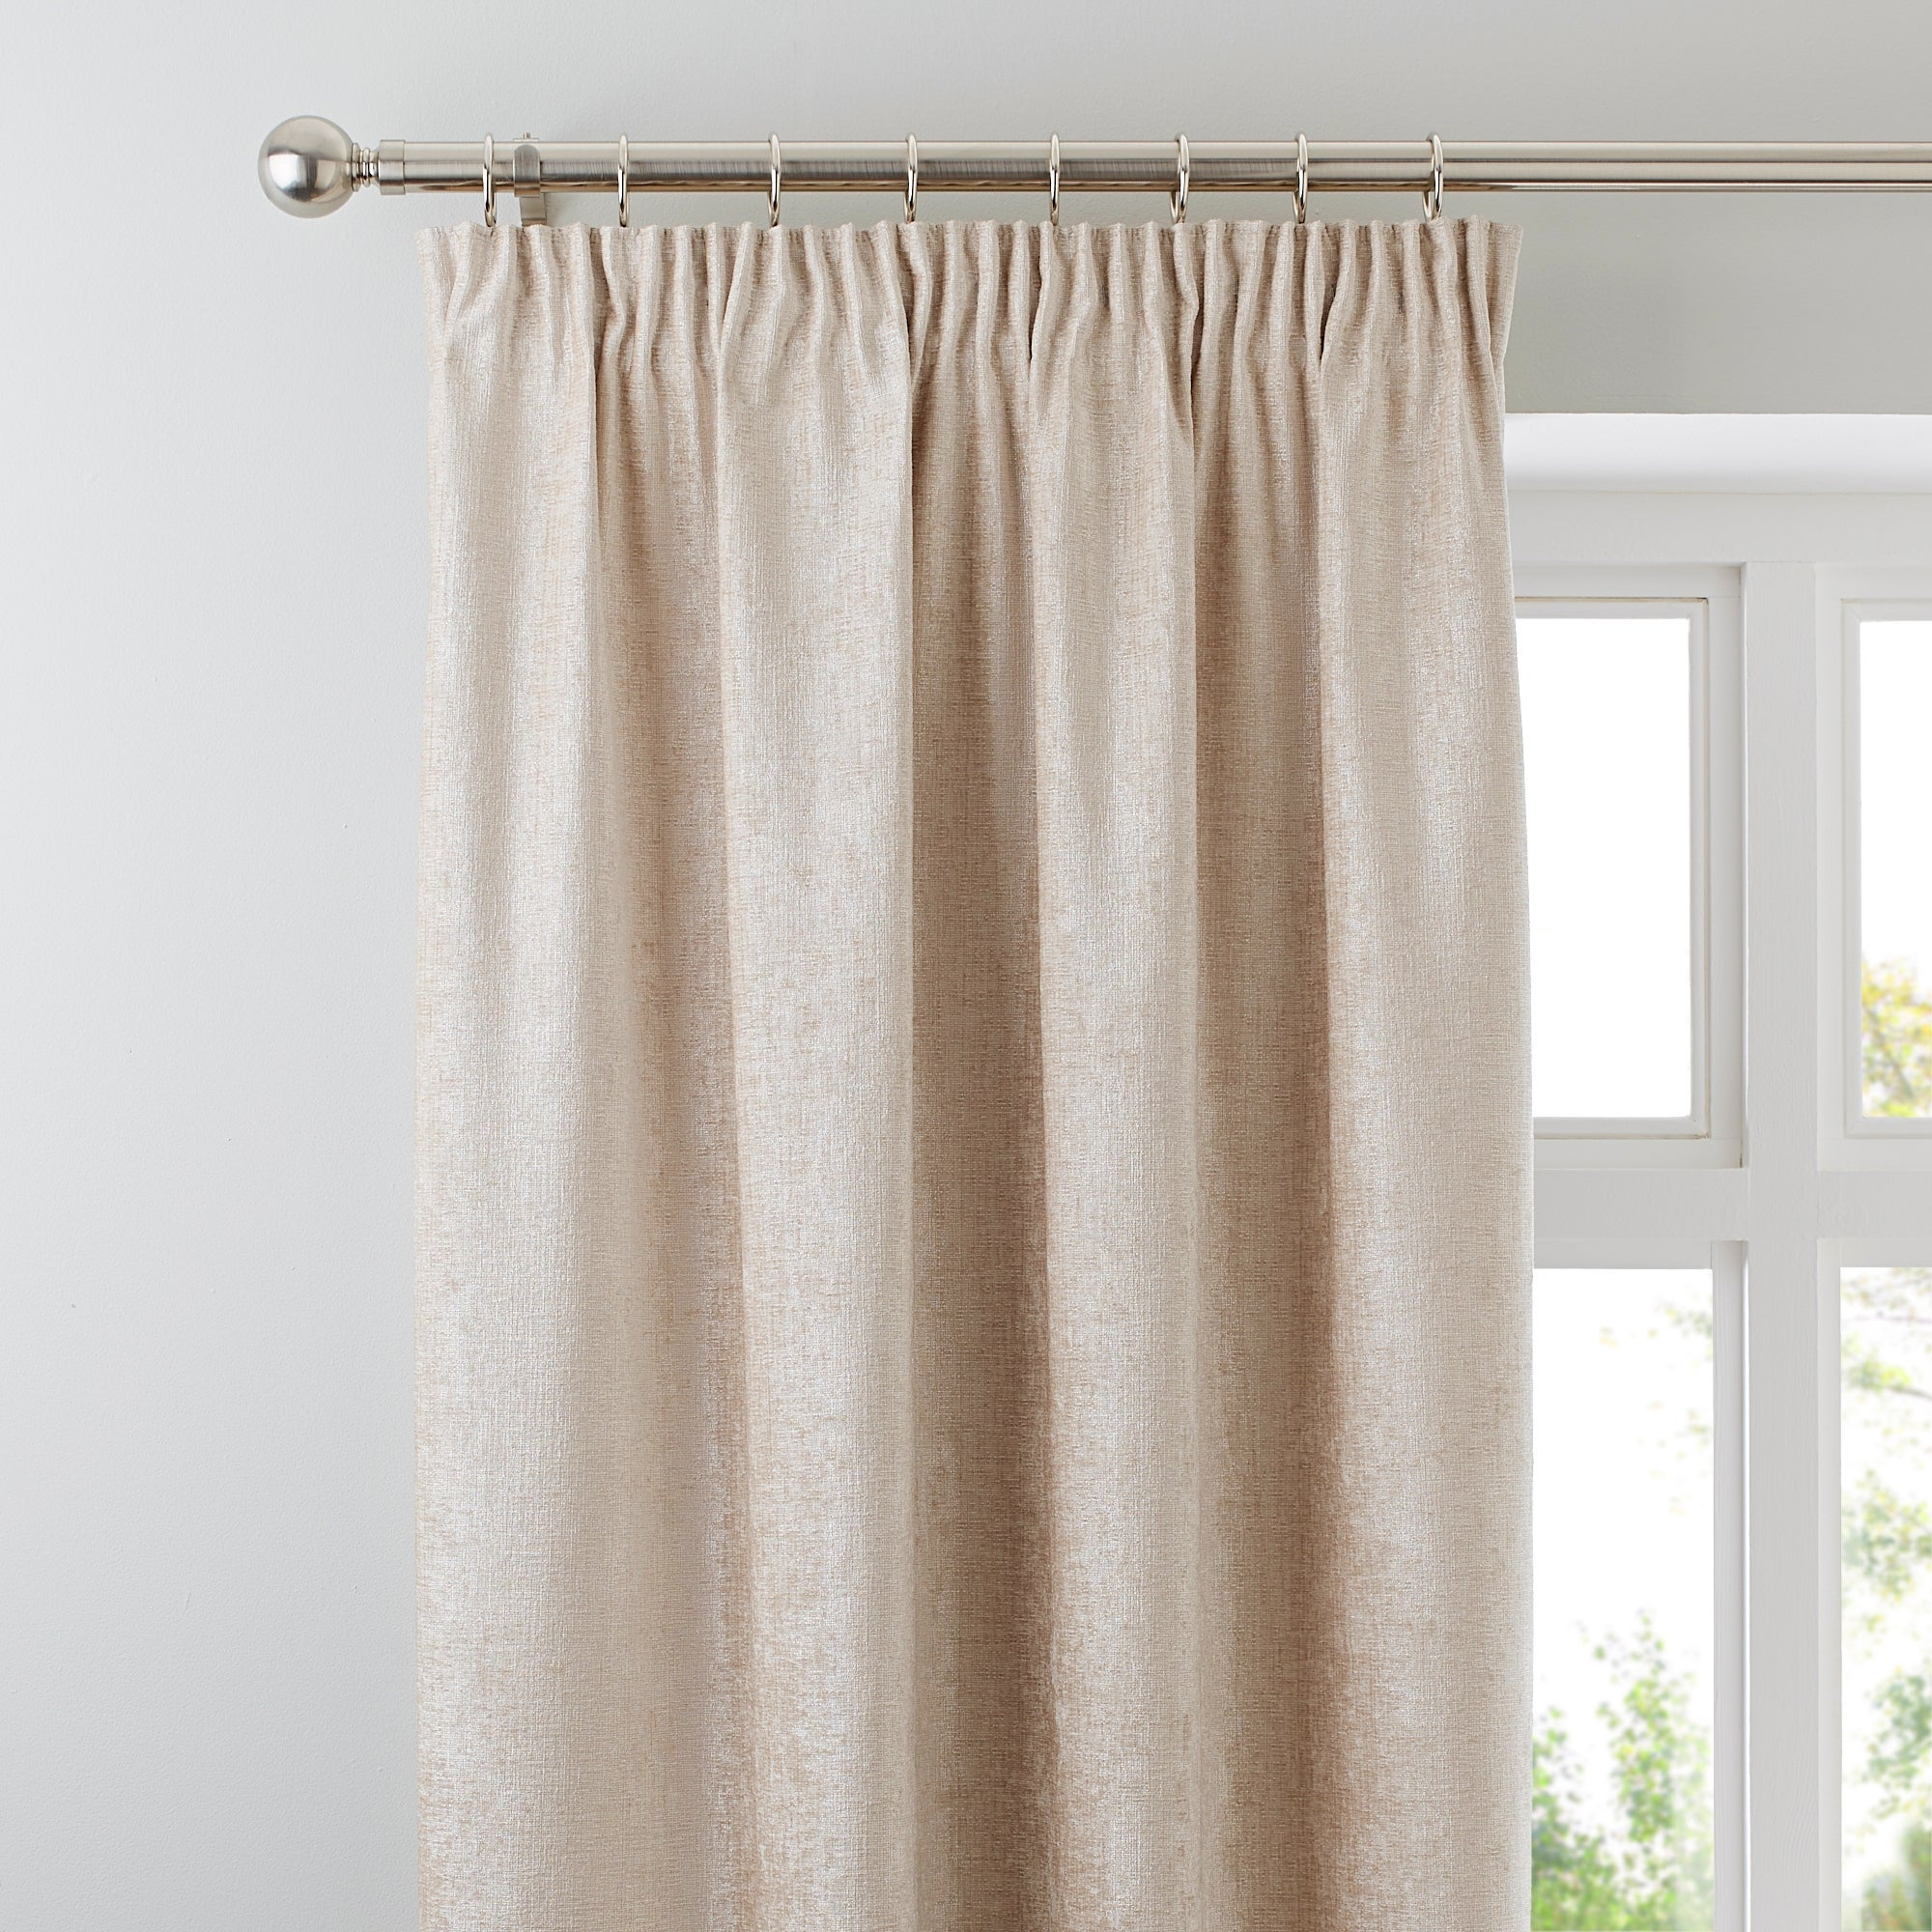 Cream Chenille Lined Pencil Pleat Curtains